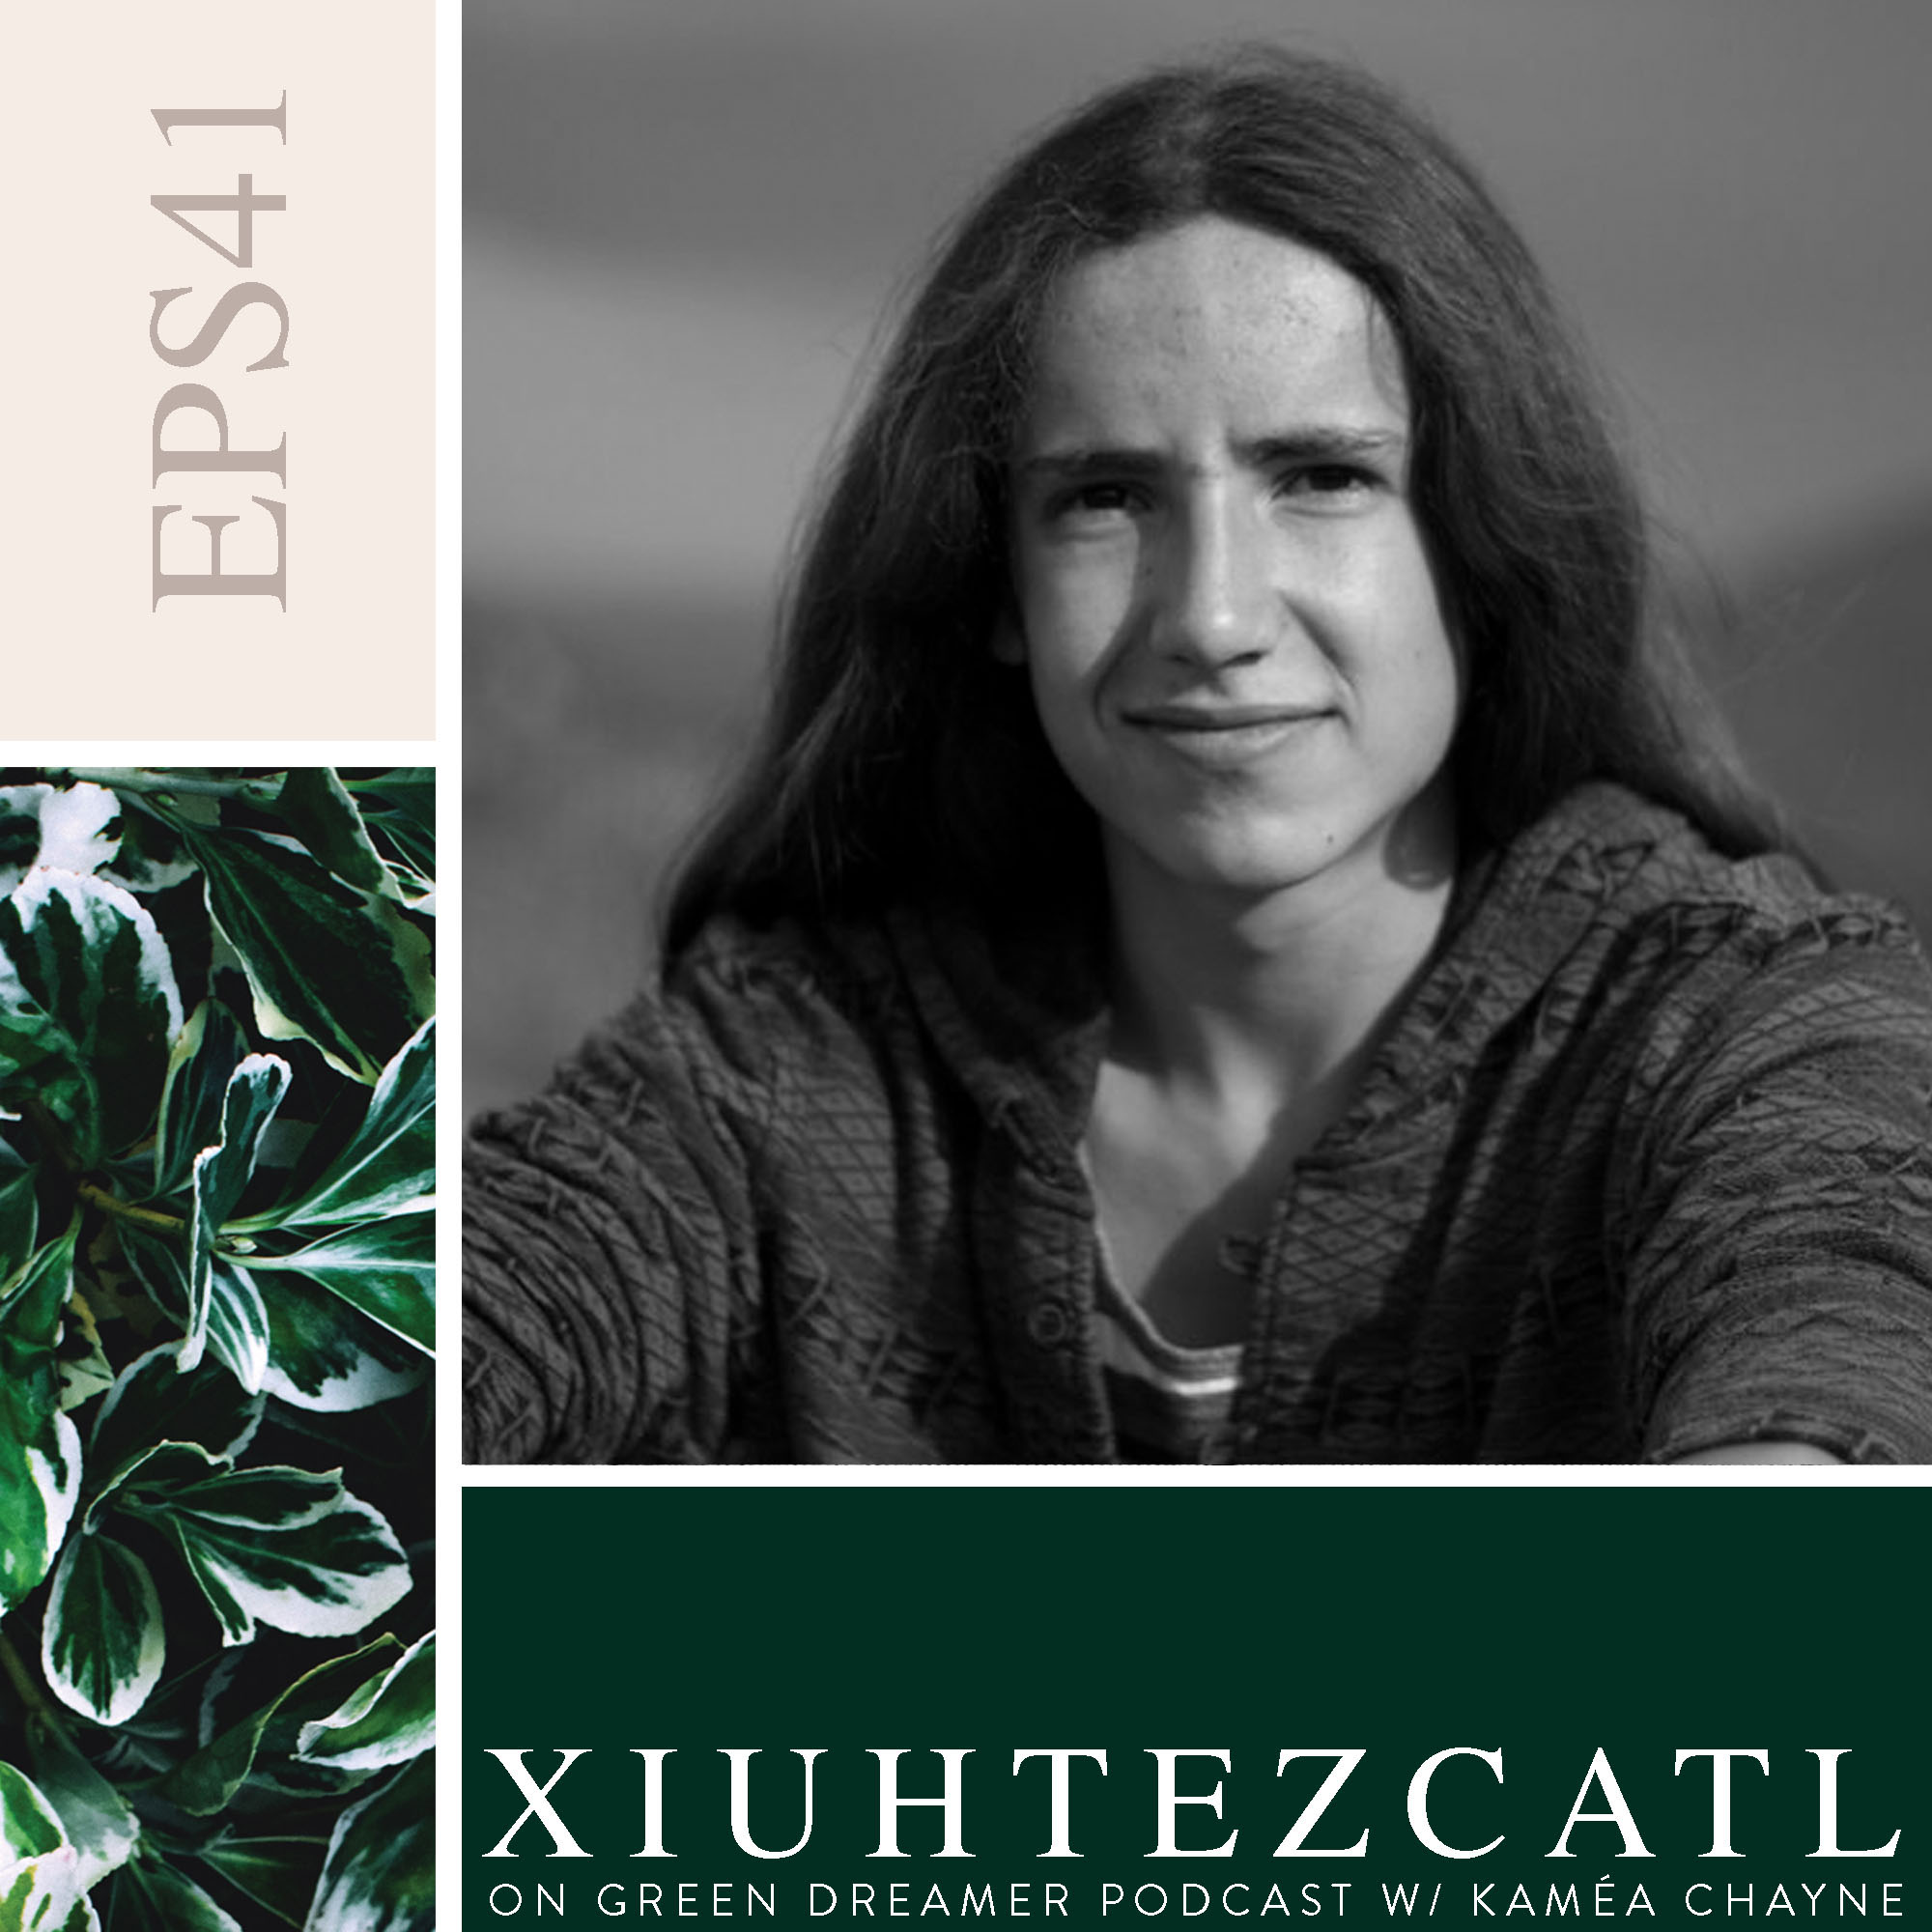 41) BW Xiuhtezcatl-Martinez-of-Earth-Guardians-talks-sustainability-on-Green-Dreamer-Podcast-with-Kaméa-Chayne.jpg